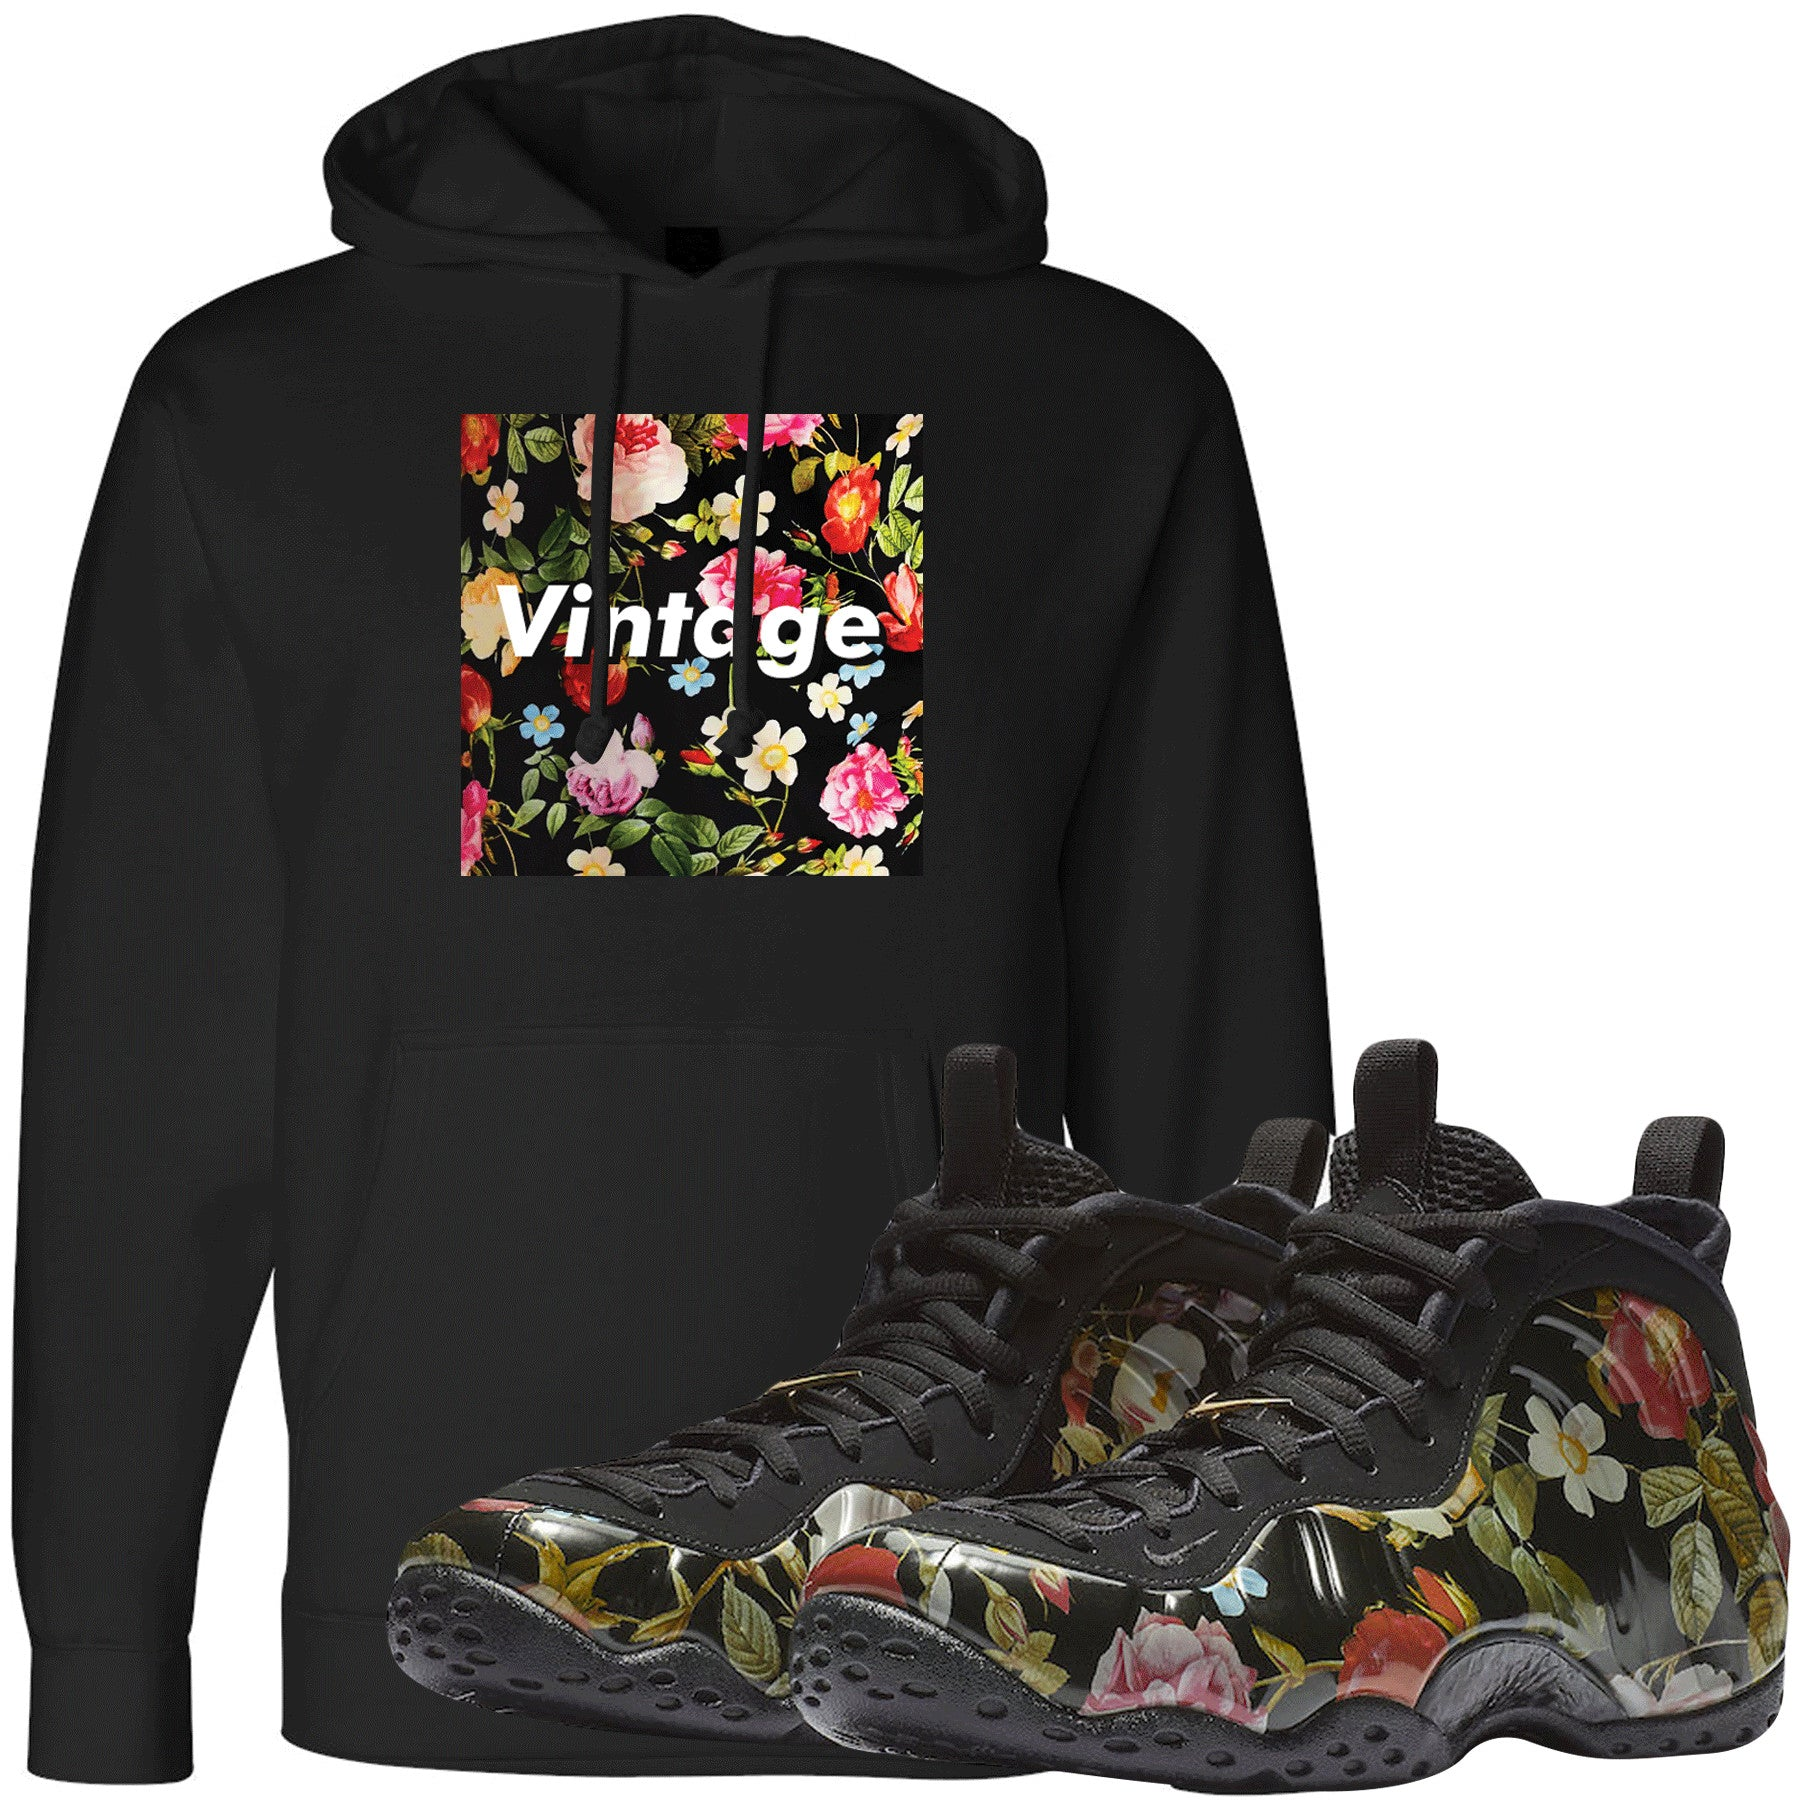 half off cfa5c c8f17 Wear this sneaker matching hoodie to match your Air Foamposite One Floral  sneakers. Match your